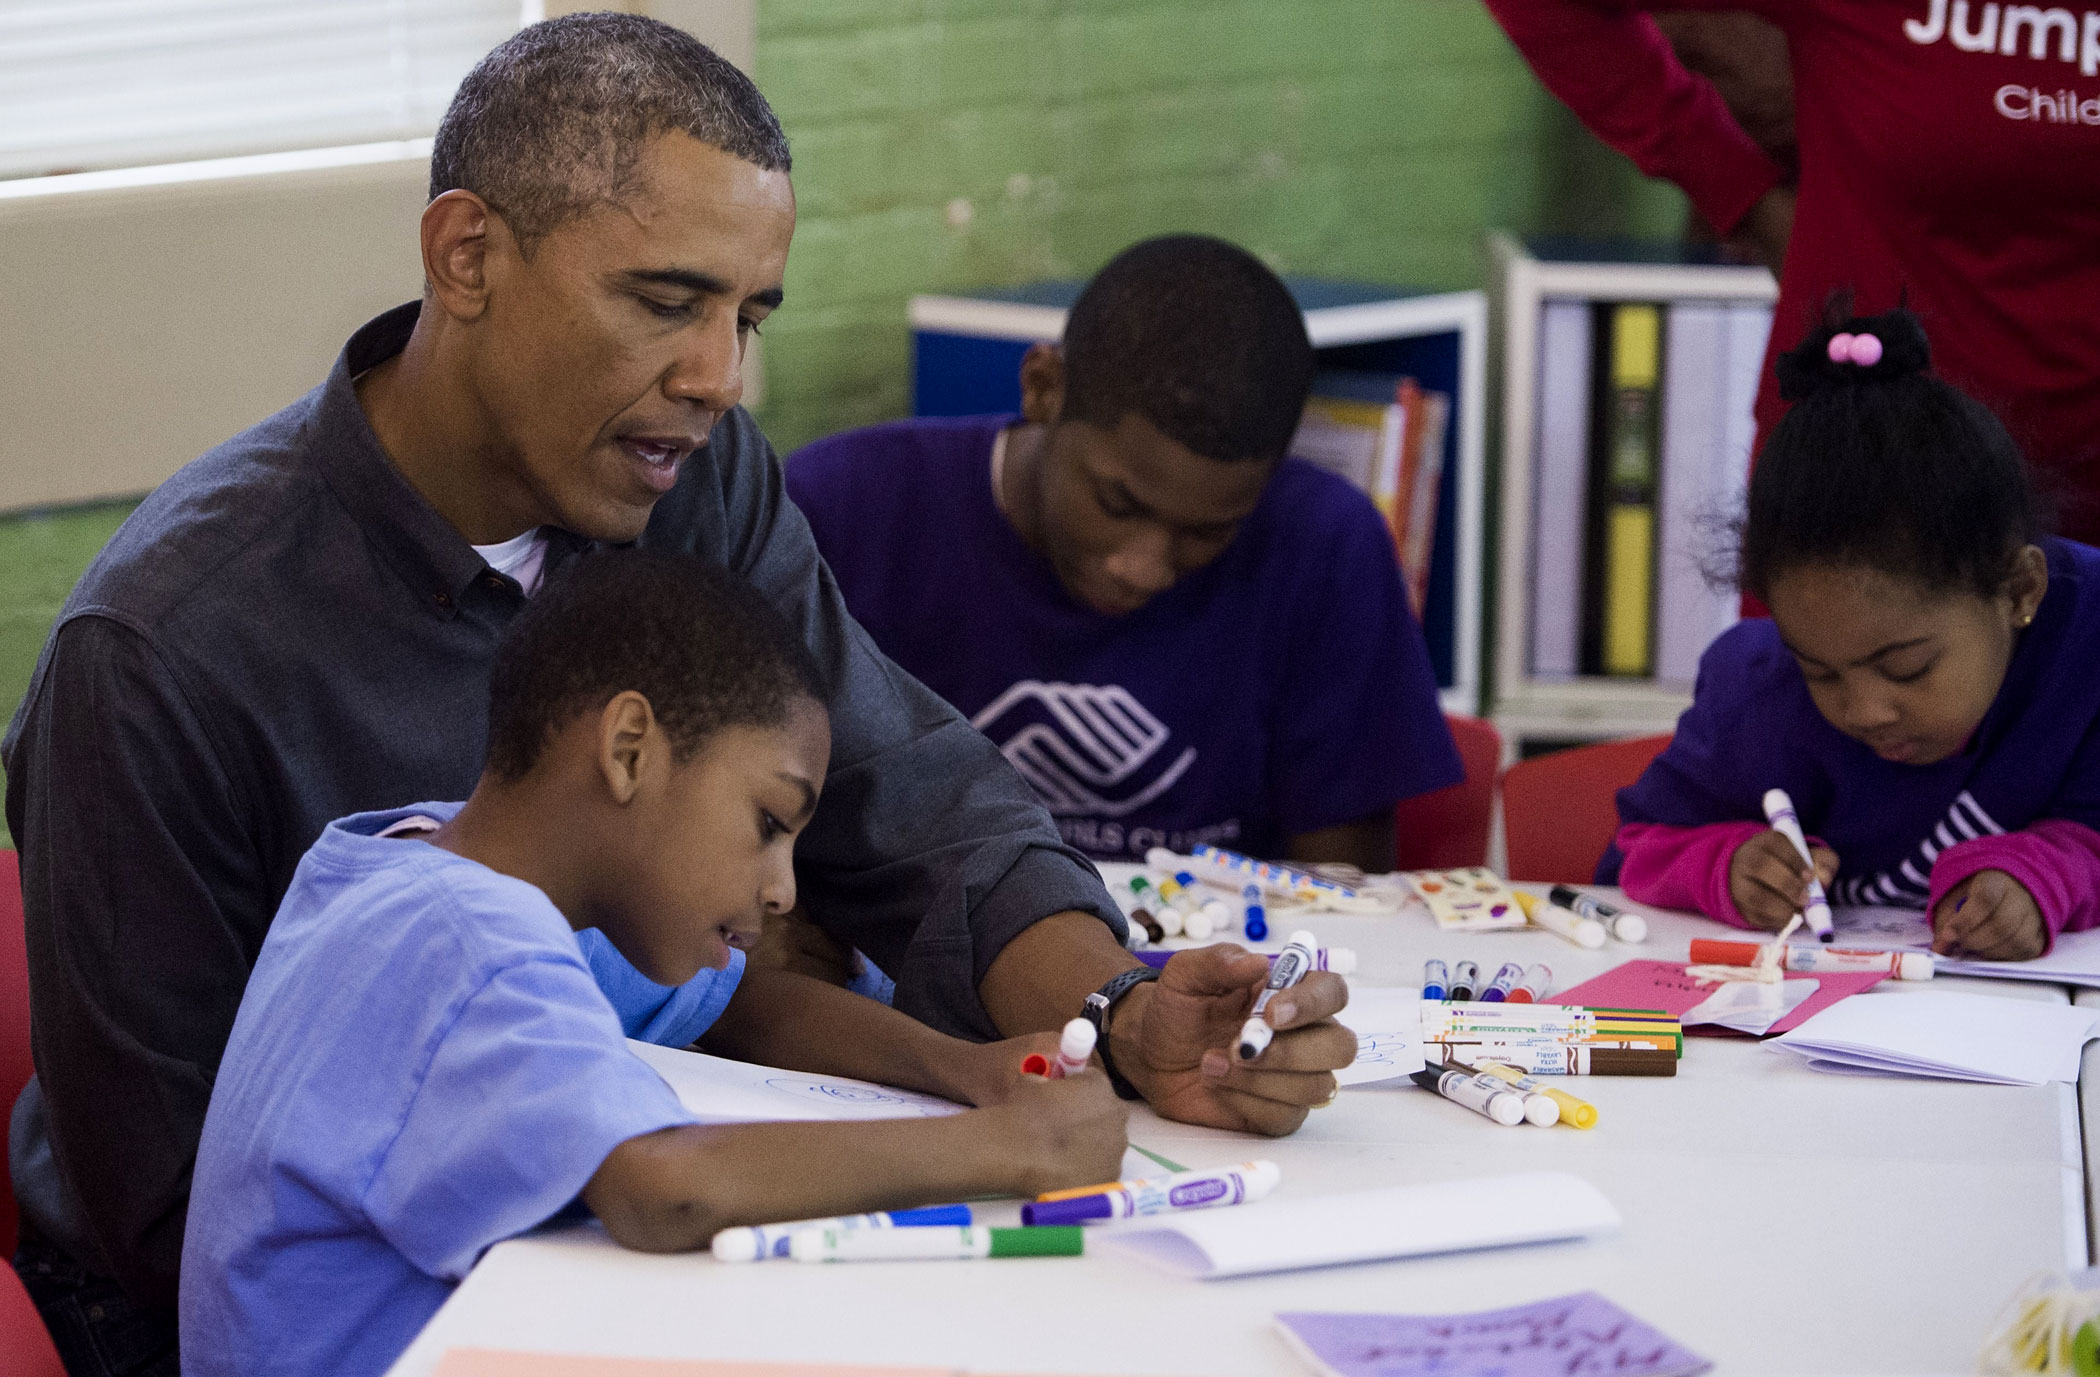 President Barack Obama sits alongside children as he participates in a literacy project at the Boys and Girls Club of Greater Washington in honor of Martin Luther King, Jr. Day in Washington, DC, Jan. 19, 2015.